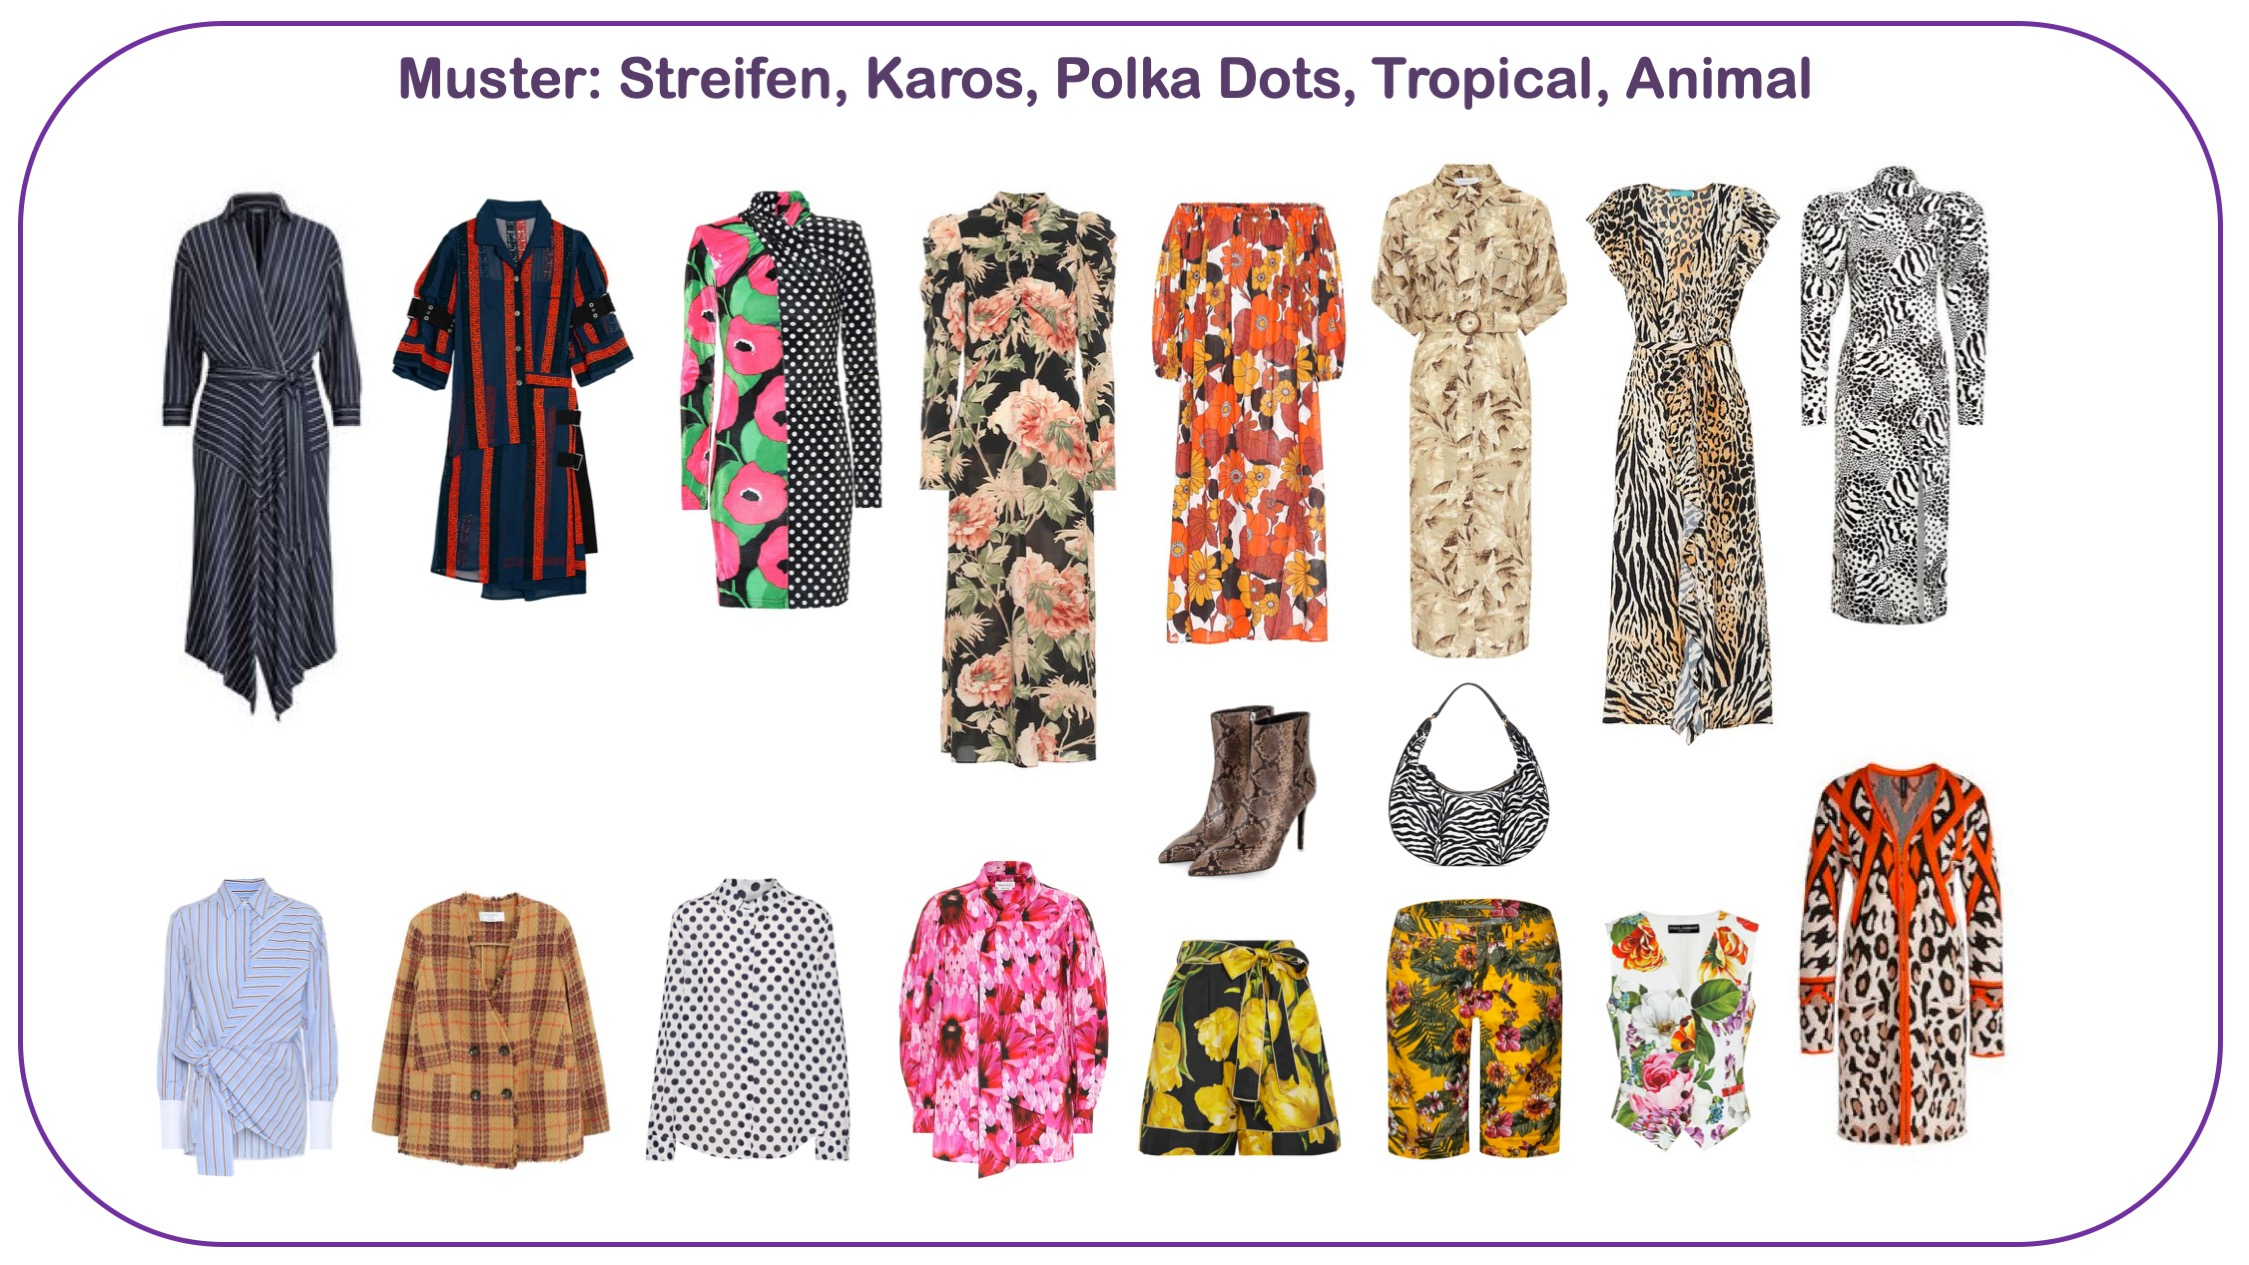 Modetrends FS 2020 - Muster